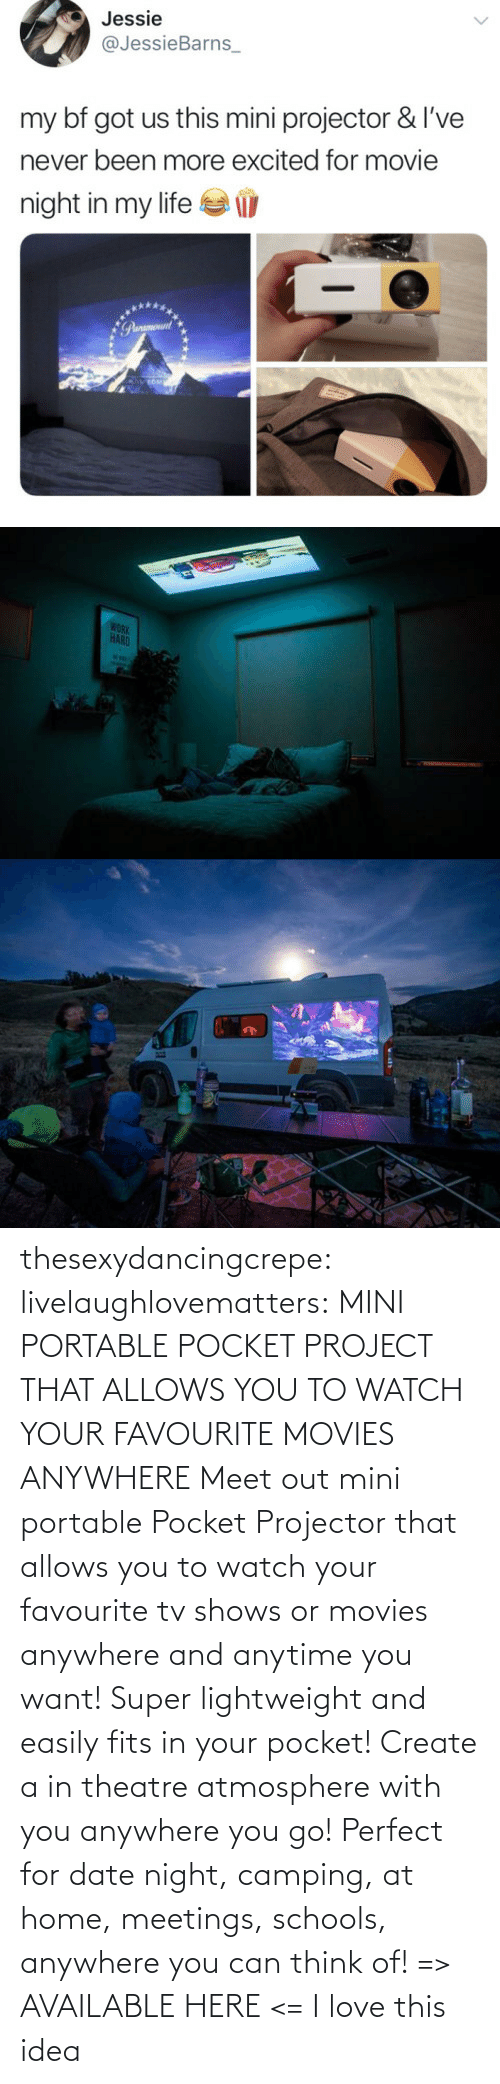 Date: thesexydancingcrepe: livelaughlovematters:   MINI PORTABLE POCKET PROJECT THAT ALLOWS YOU TO WATCH YOUR FAVOURITE MOVIES ANYWHERE Meet out mini portable Pocket Projector that allows you to watch your favourite tv shows or movies anywhere and anytime you want! Super lightweight and easily fits in your pocket! Create a in theatre atmosphere with you anywhere you go! Perfect for date night, camping, at home, meetings, schools, anywhere you can think of! => AVAILABLE HERE <=    I love this idea